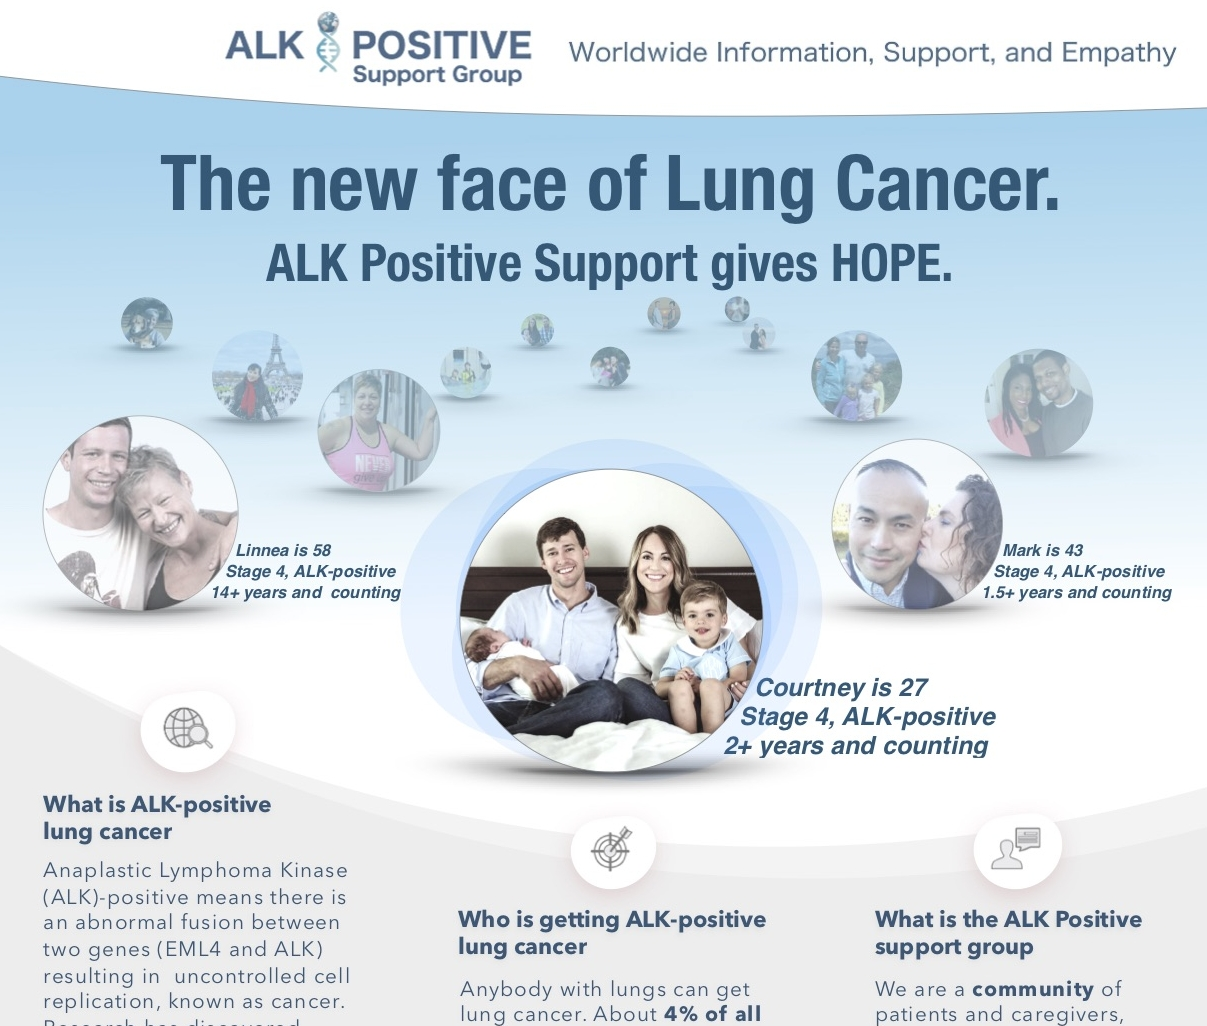 """Download The ALK Positive """"Oncologists"""" Brochure - Help your patients learn the basics about ALK-positive lung cancer, including treatment options. This brochure was made by ALK Positive, for ALK-positive lung cancer patients. It is great for the newly diagnosed and those looking to learn more about this rare disease."""